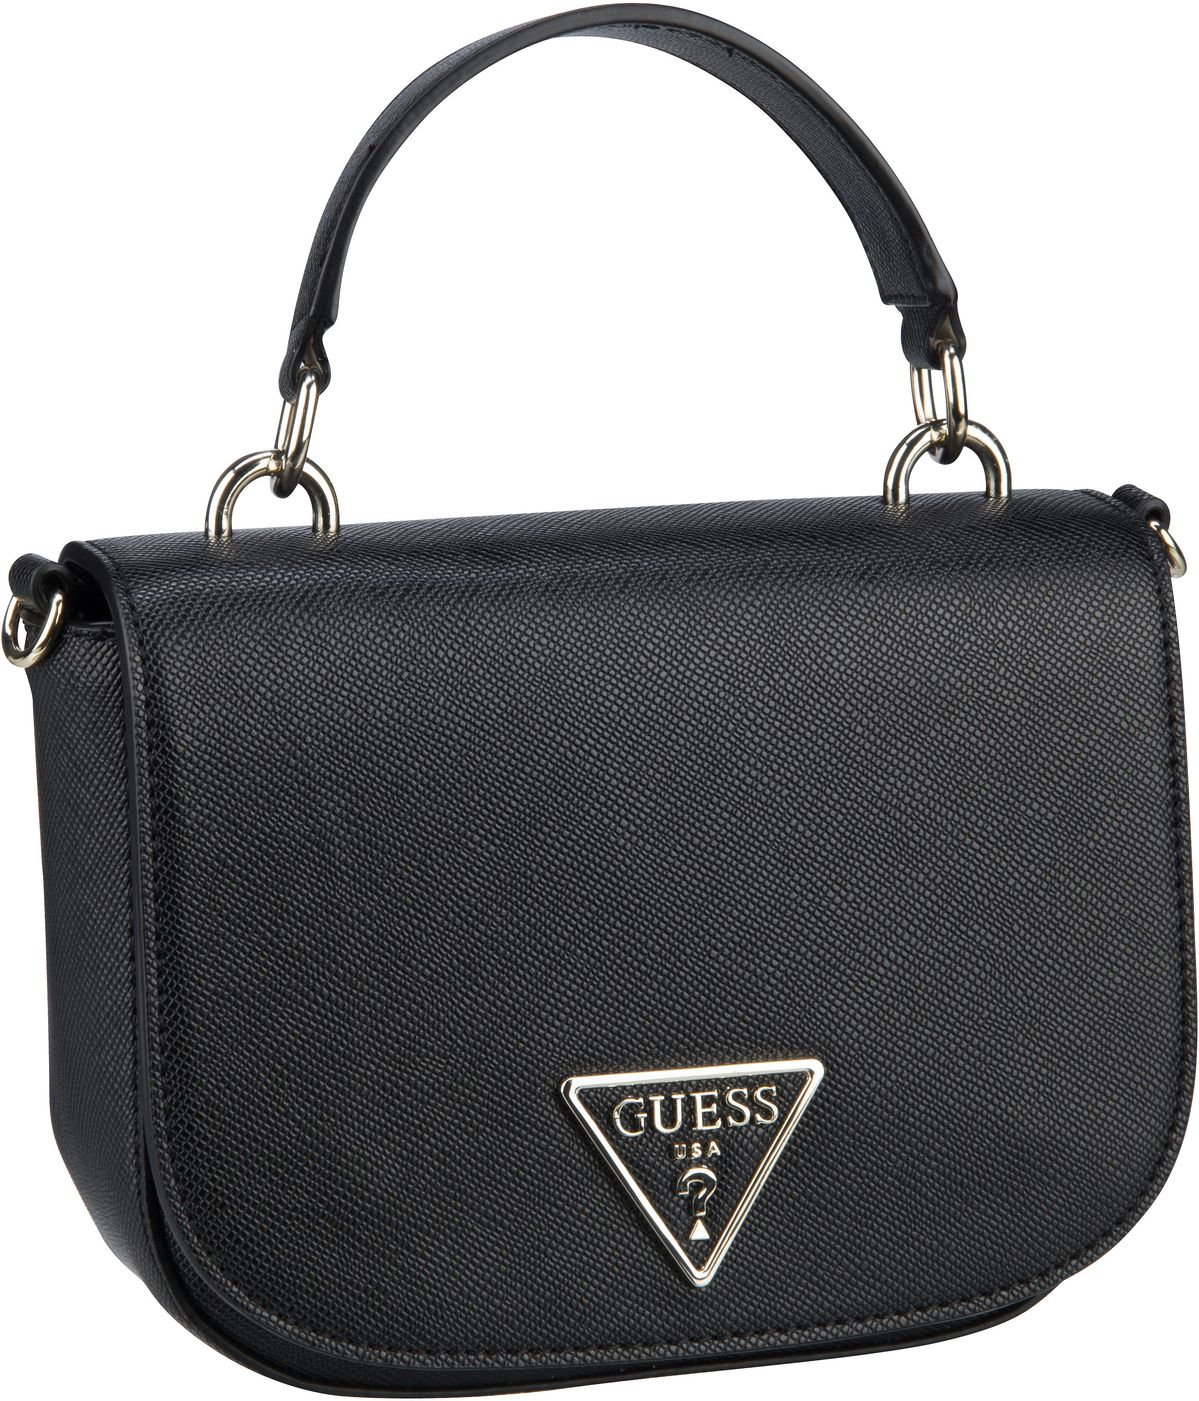 Handtasche Carys Mini Top Handle Flap Black